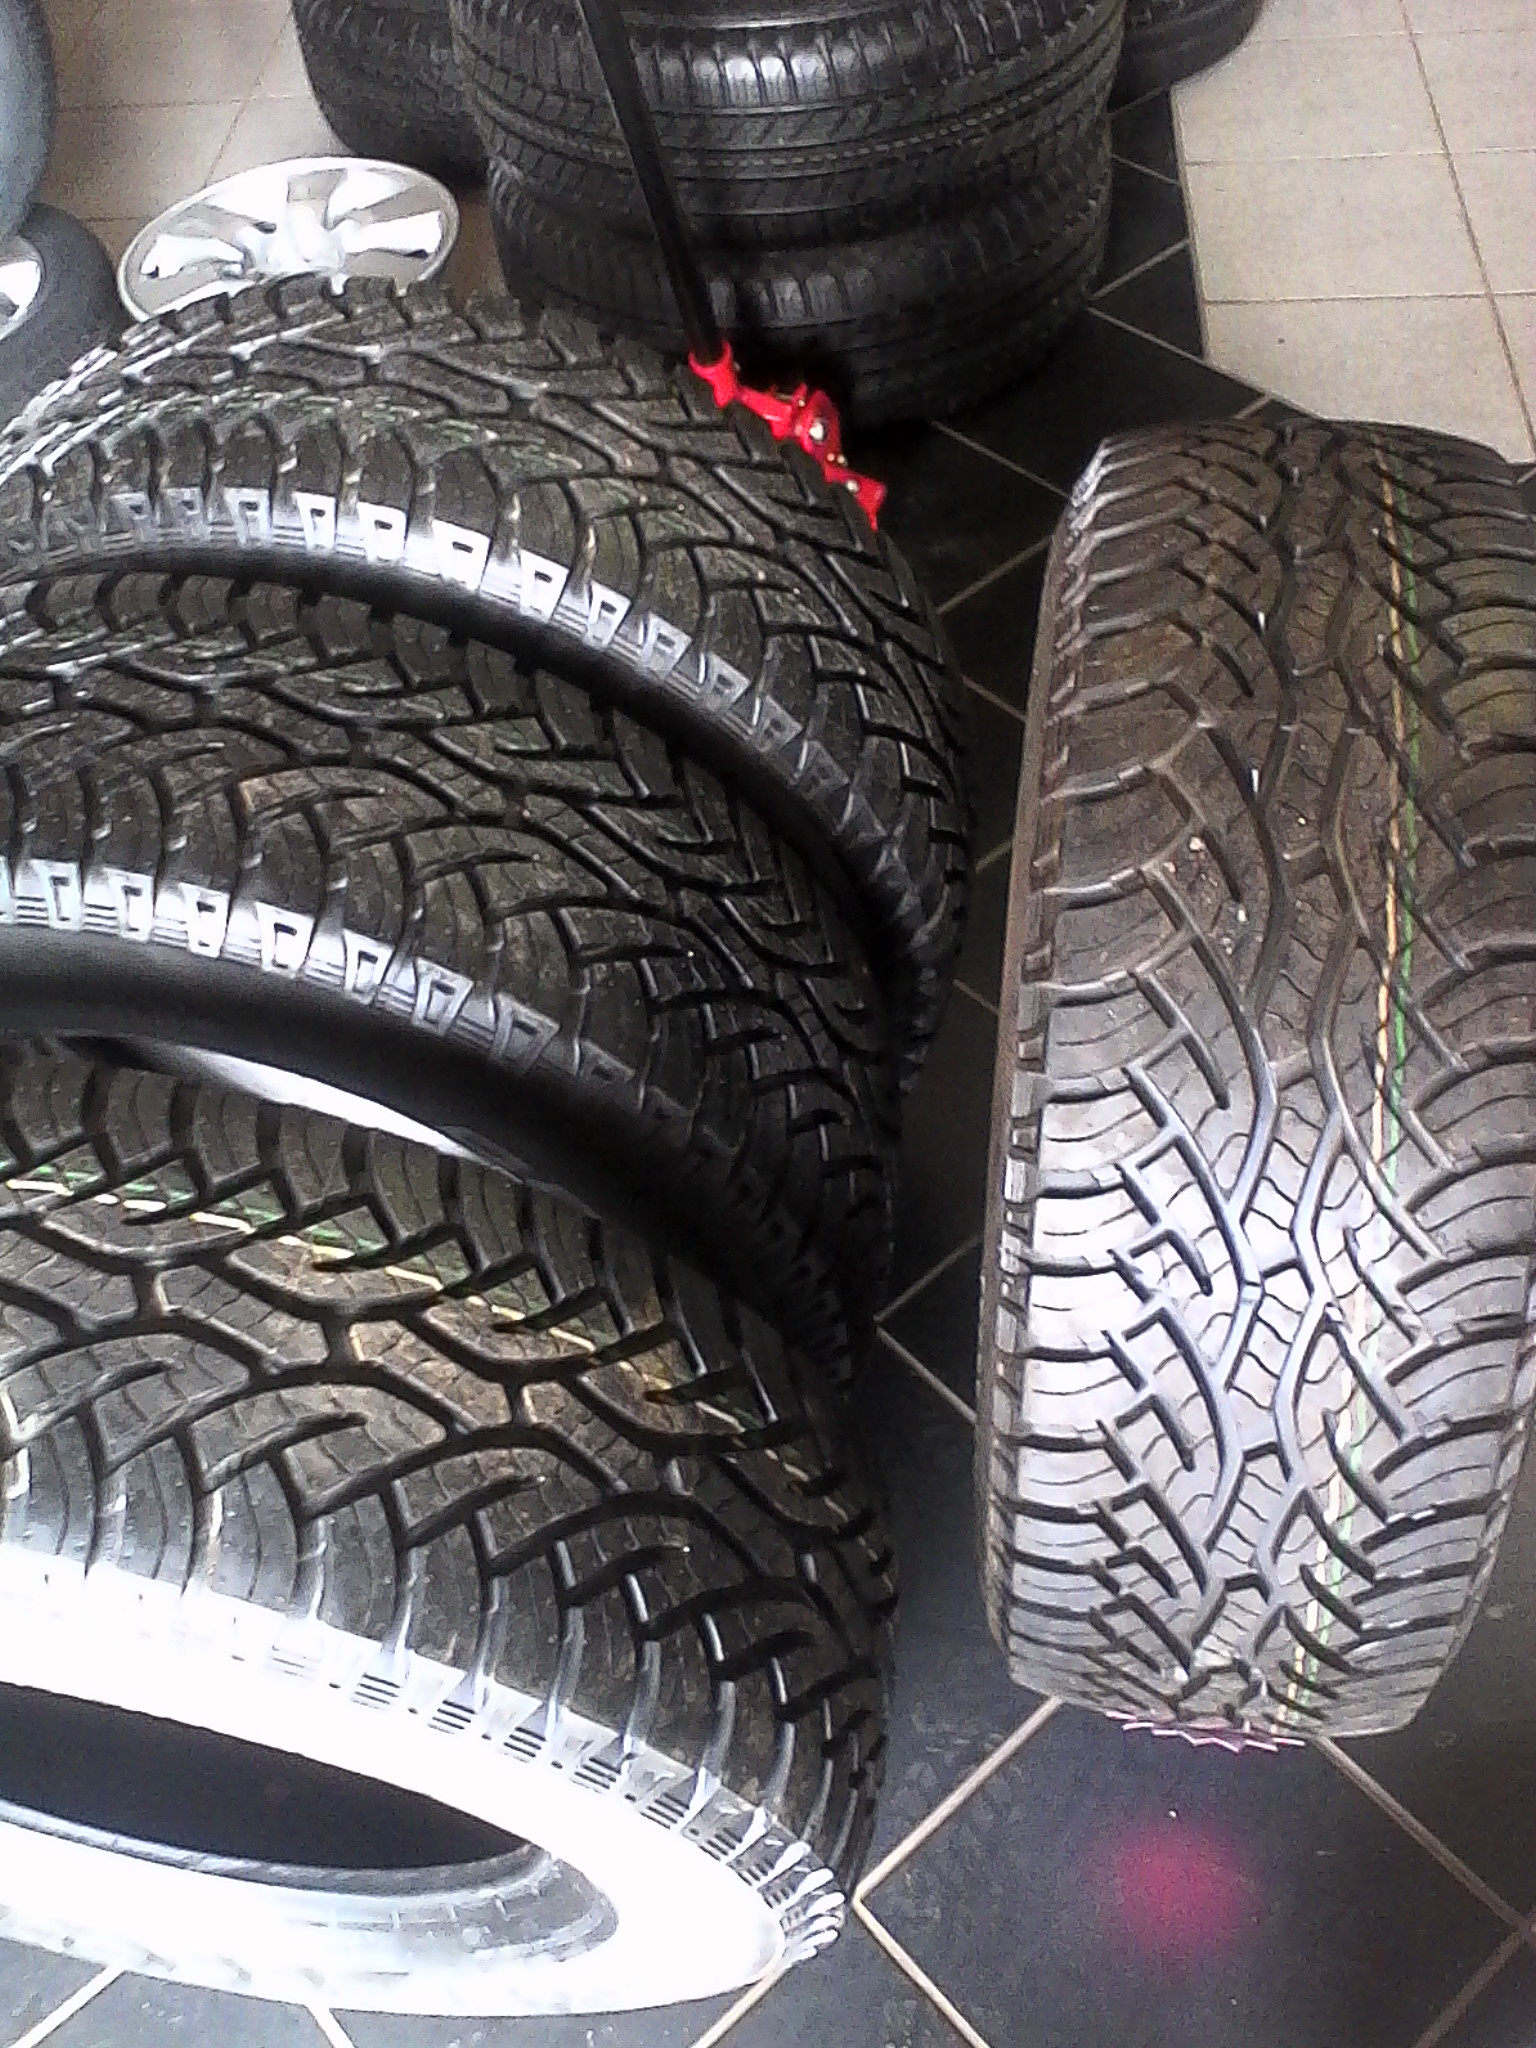 265/65/17 continental cross contact A/T 4x new tyres for your bakkie or suv r6799